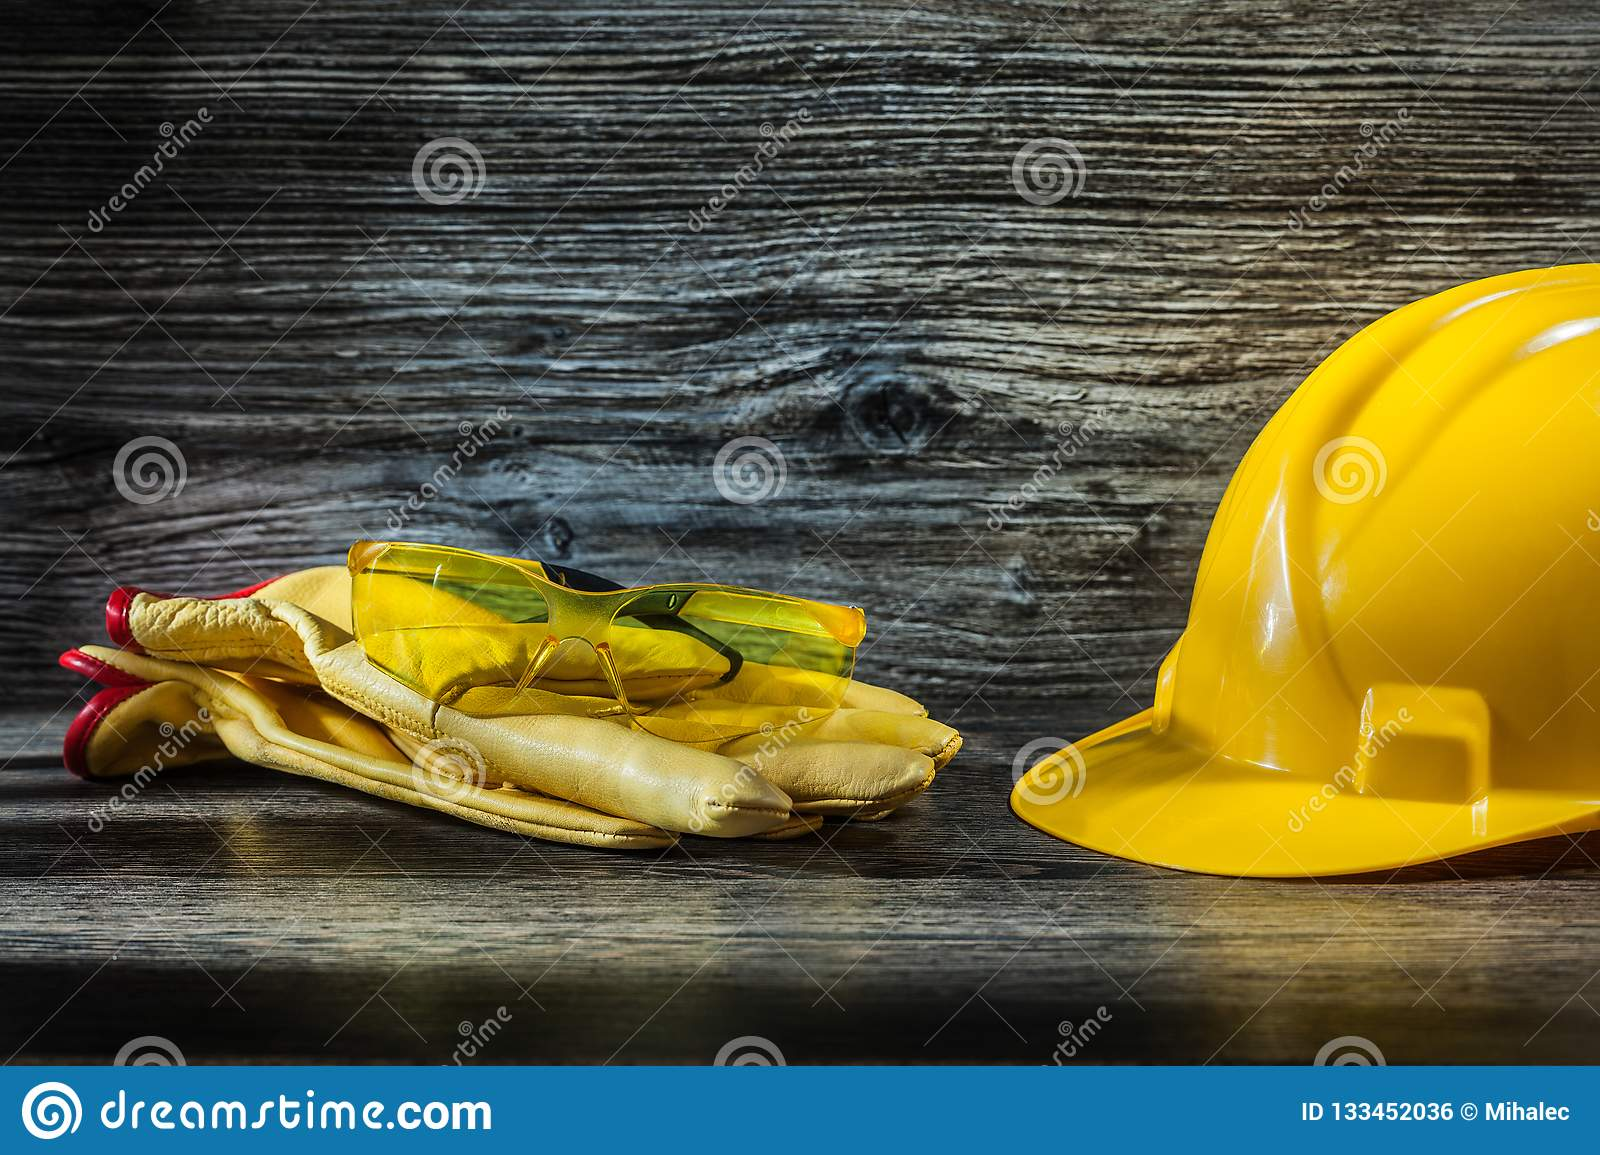 Safety glasses on working gloves and helmet